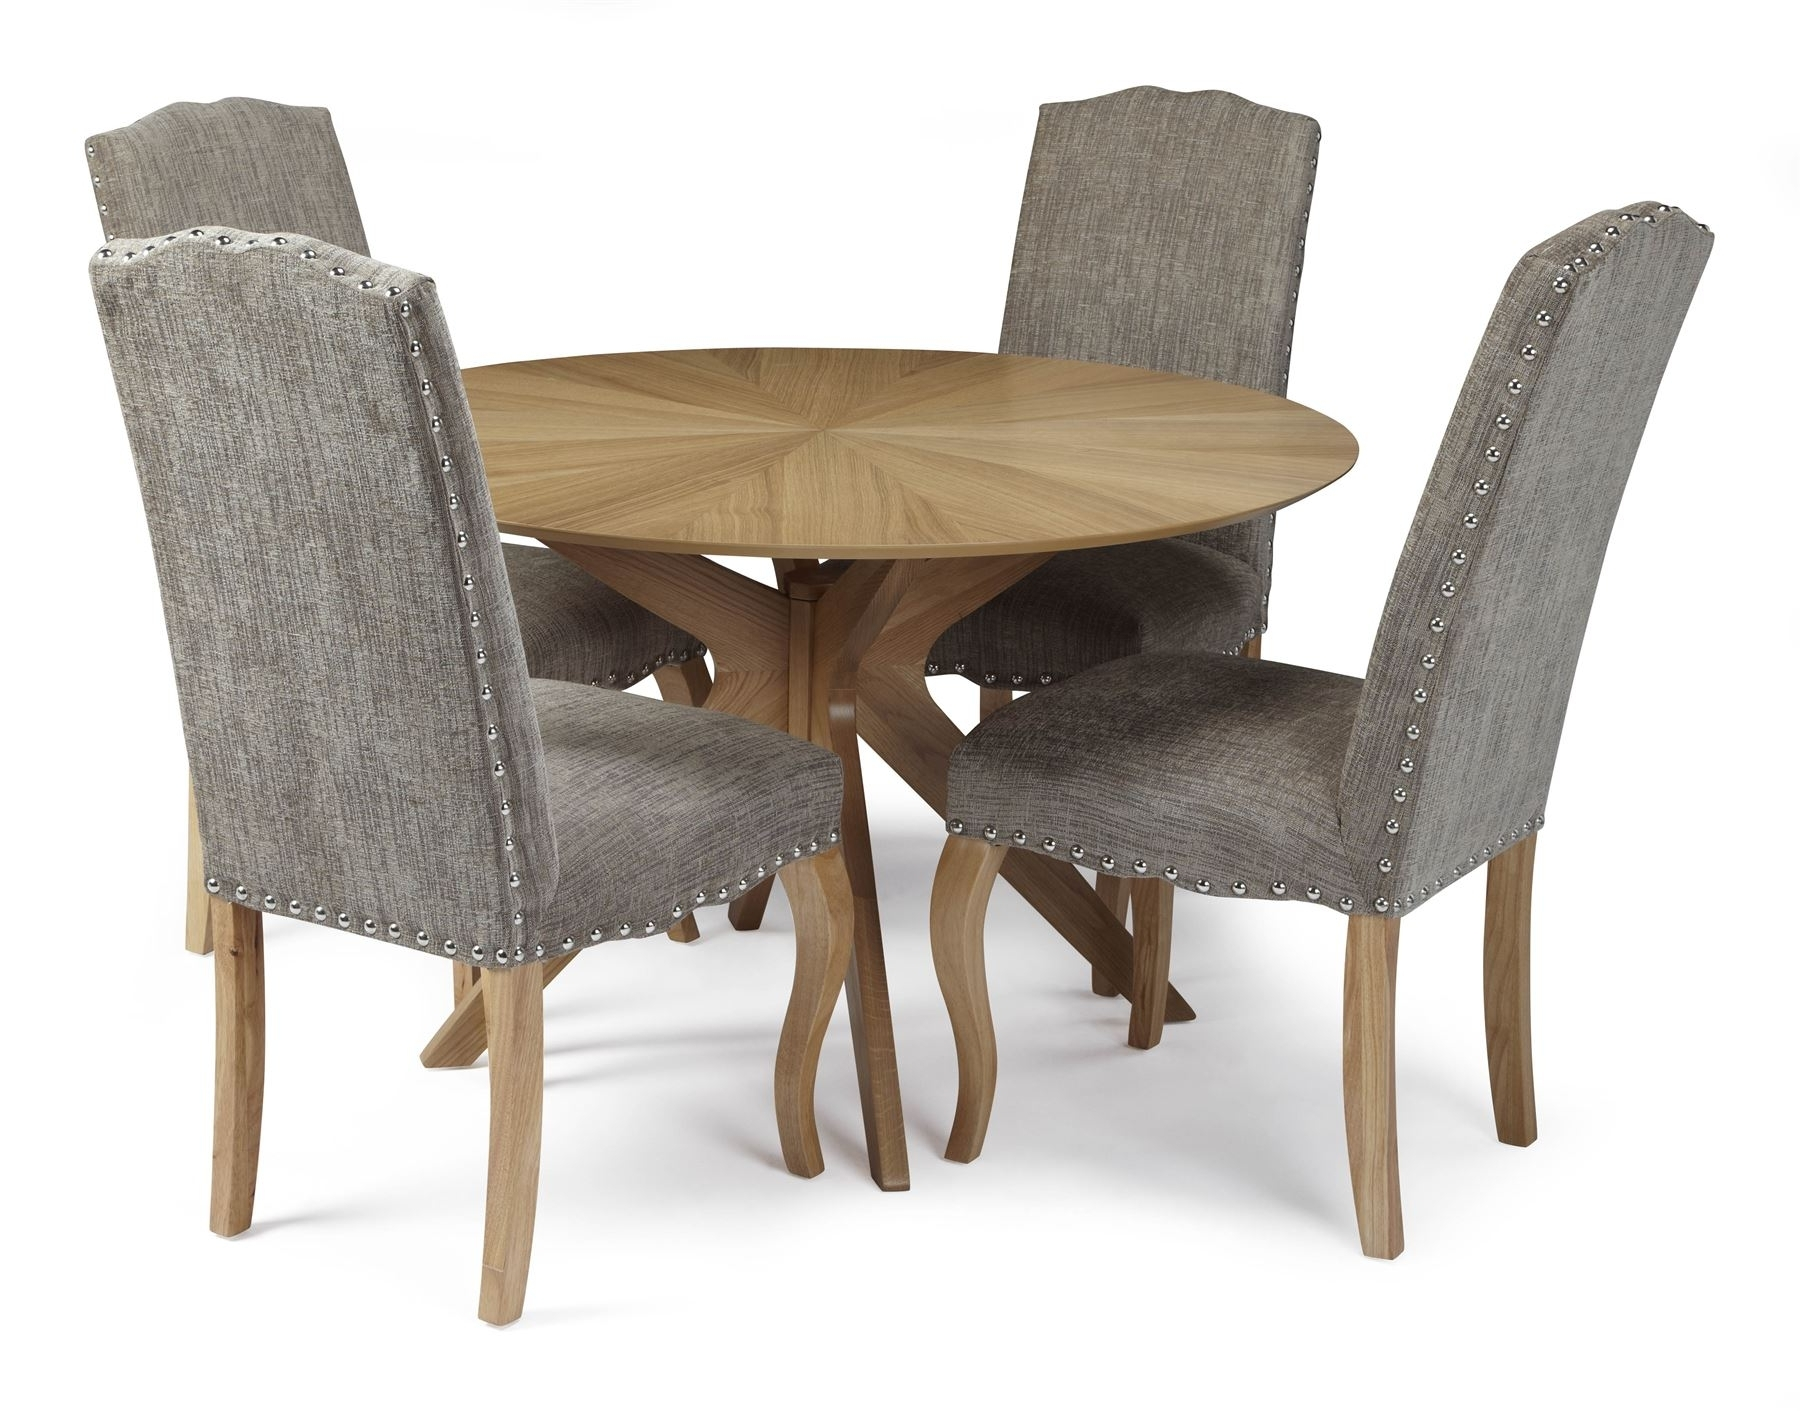 Best And Newest Round Oak Dining Tables And Chairs Pertaining To Bexley Round Oak Dining Table And 4X Kensington Bark Fabric Dining (View 7 of 25)